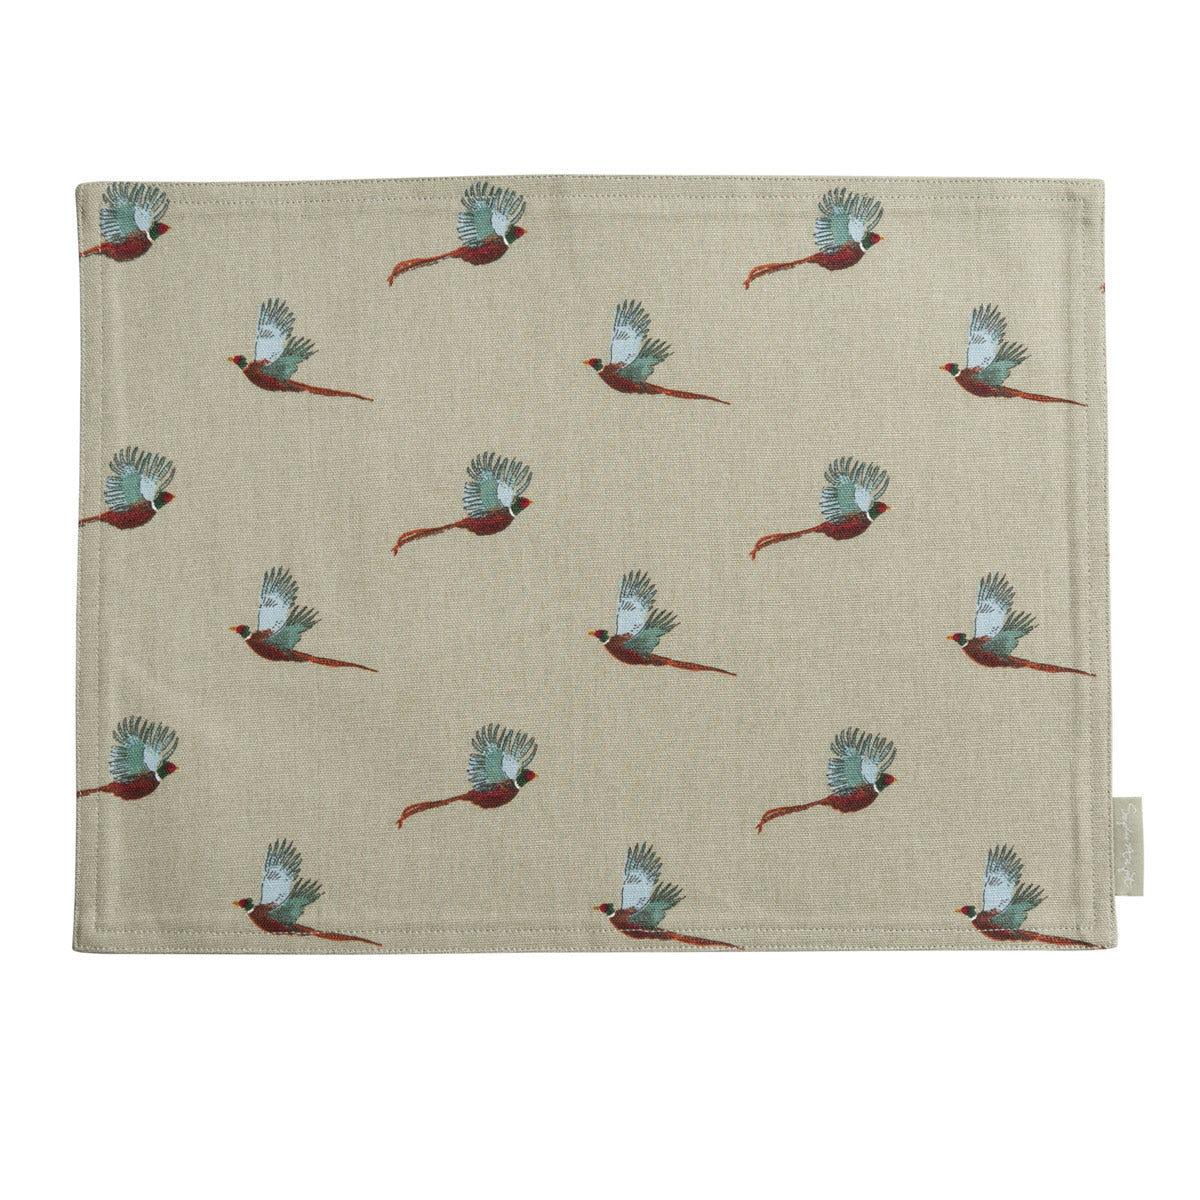 Pheasant Fabric Placemat